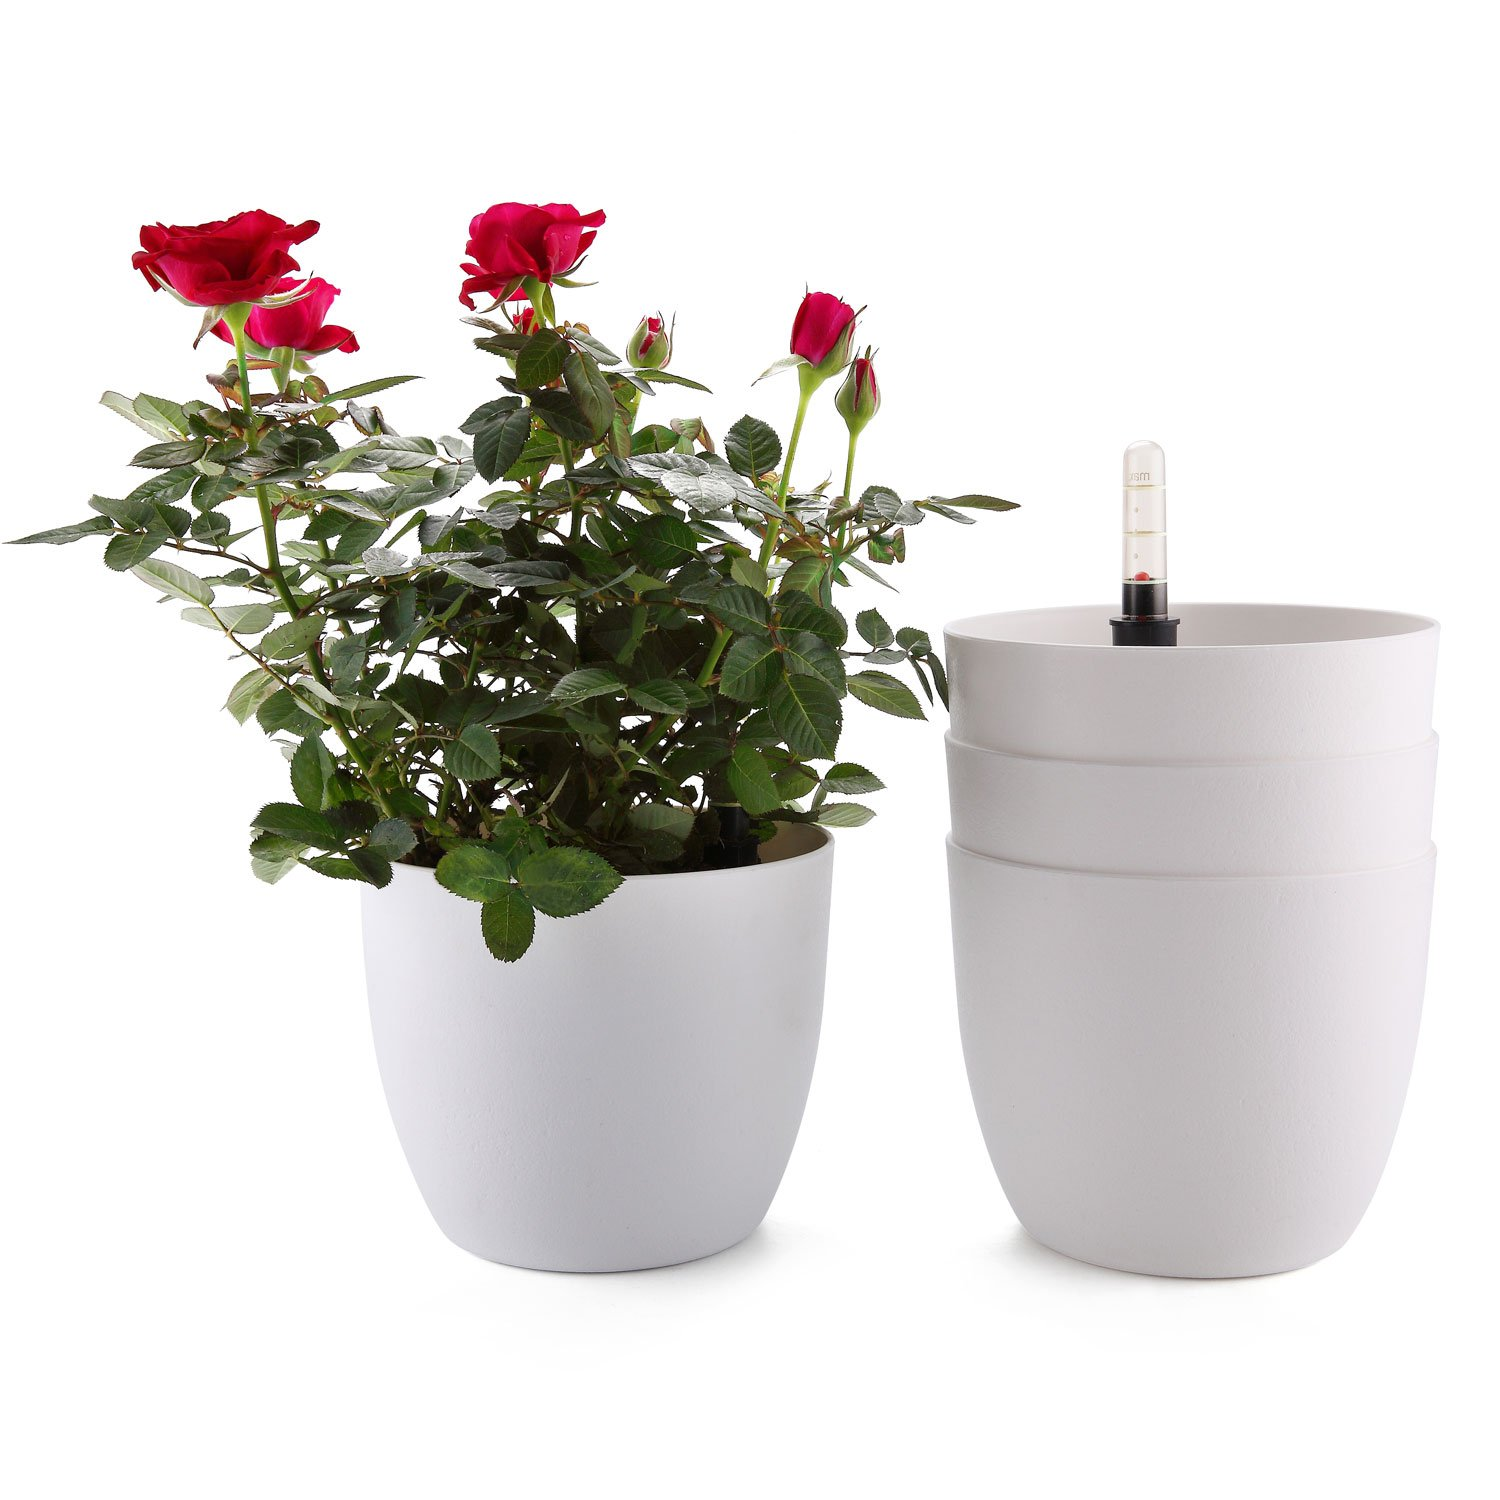 225 & Self Watering Planters and Pots: Amazon.com